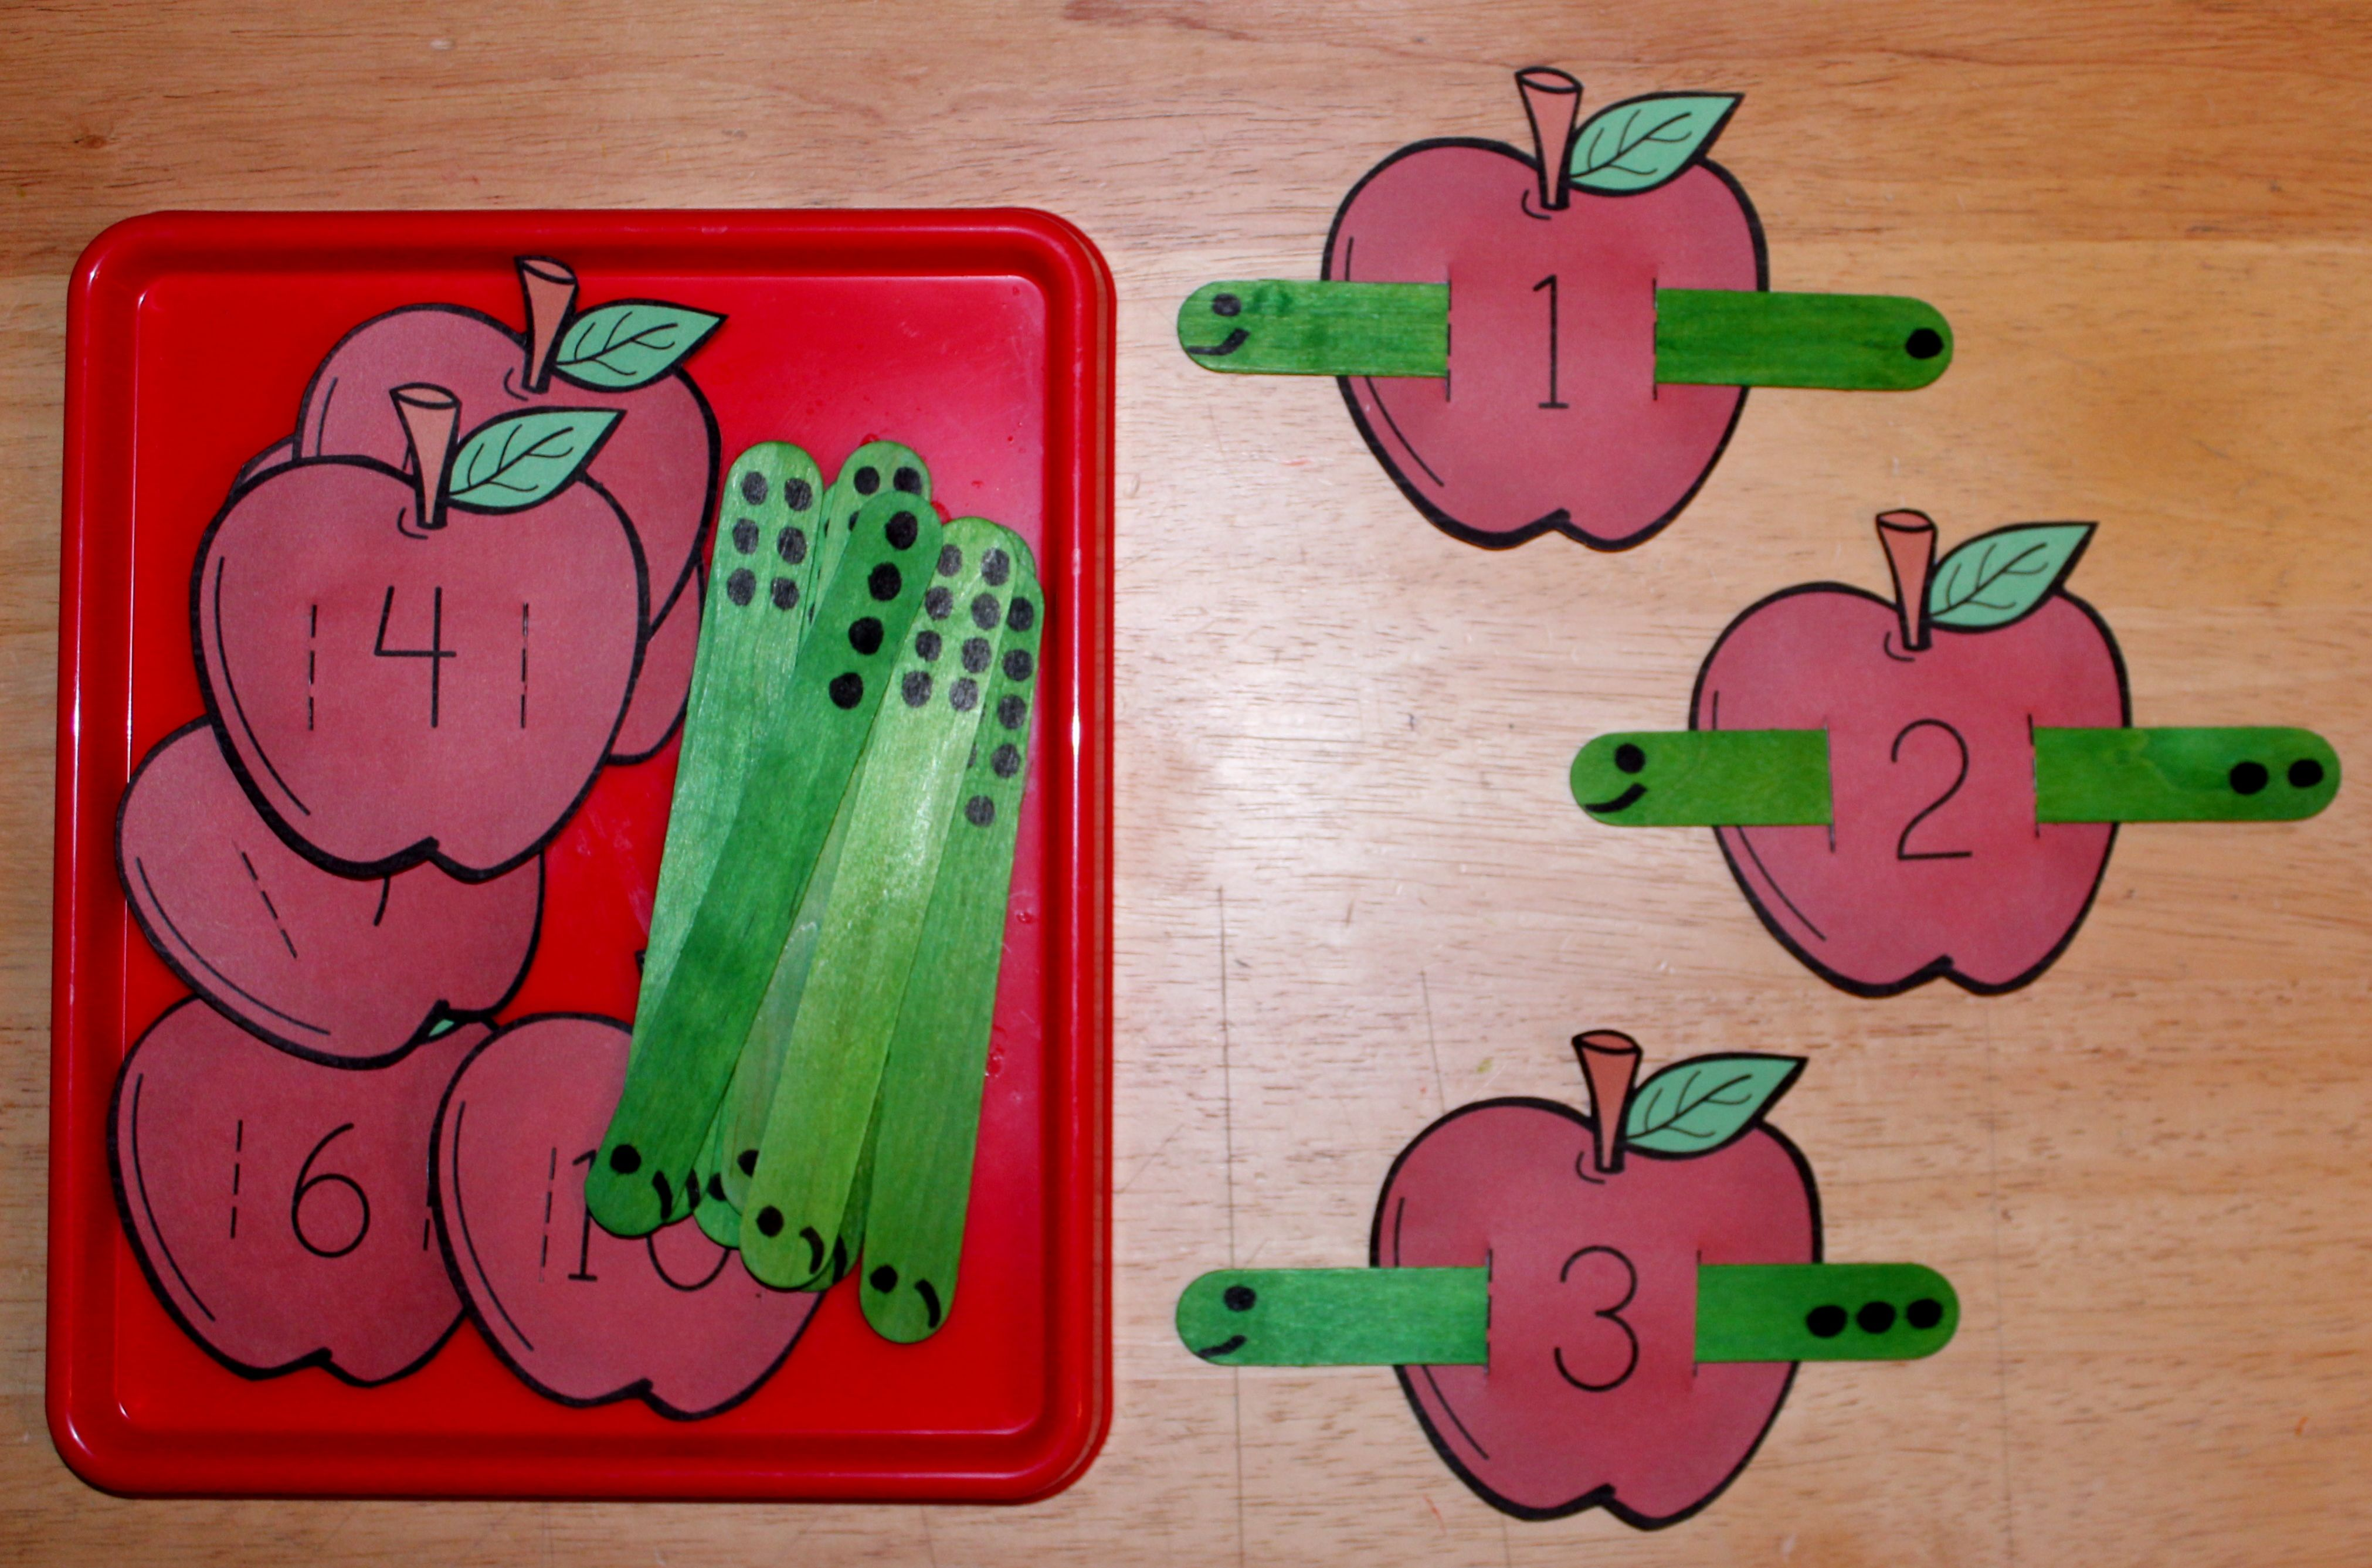 I have added a apple and worm counting activity to 1 2 3 Learn